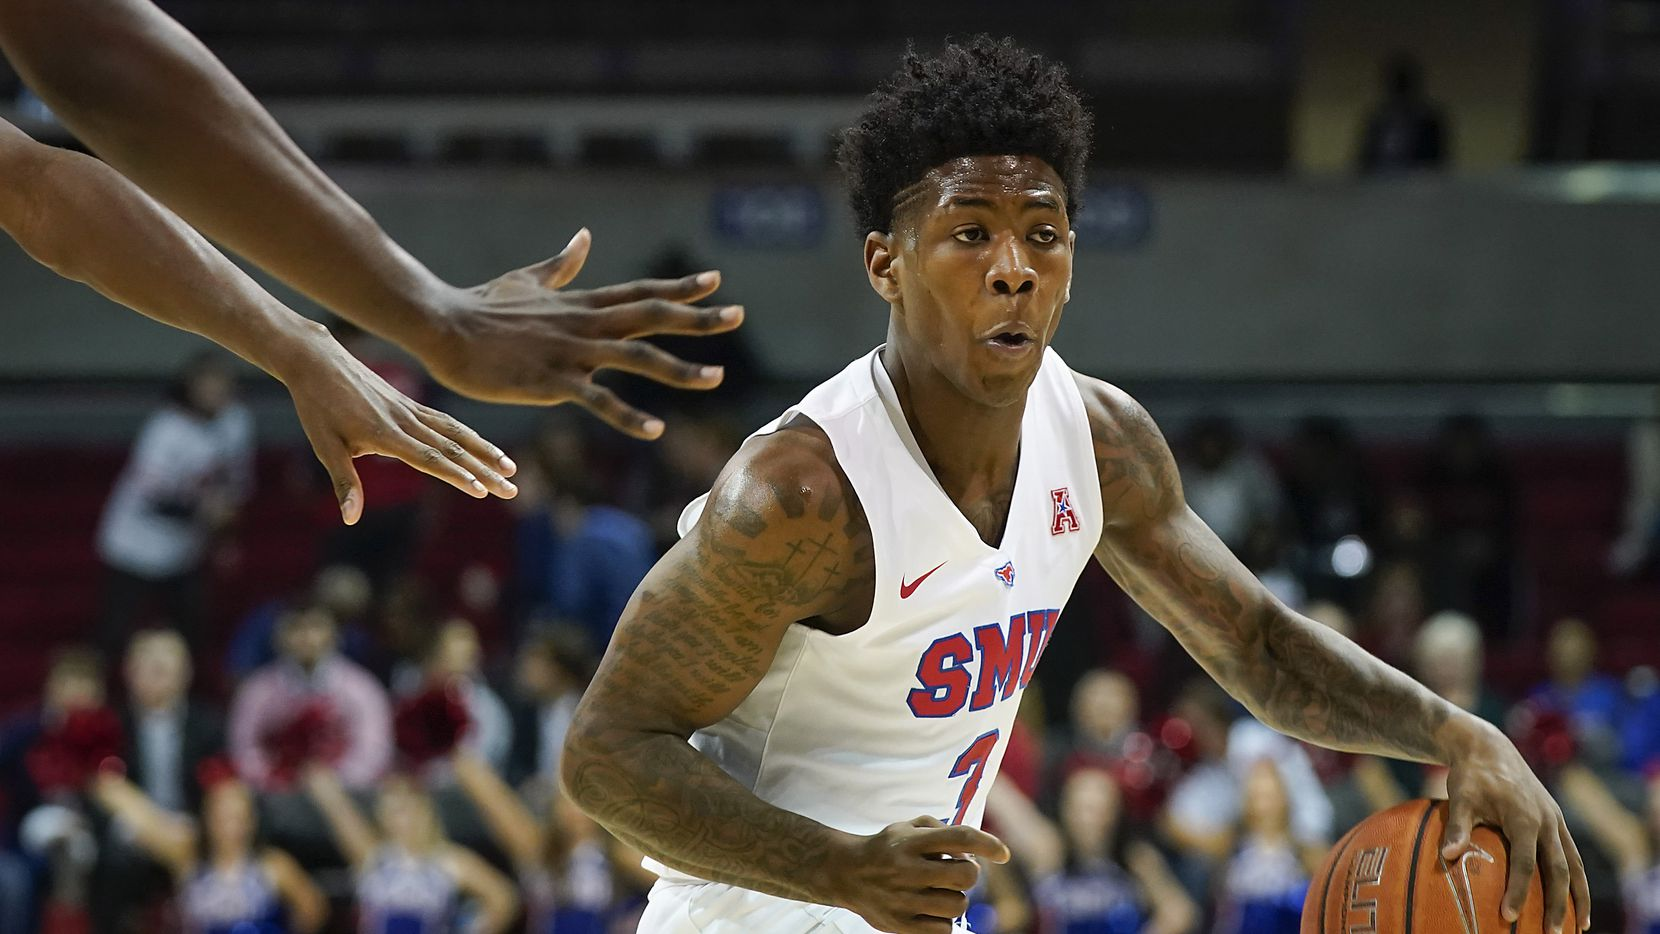 FILE - SMU guard Kendric Davis brings the ball up the floor during the first half of a game against East Carolina at Moody Coliseum on Wednesday, Jan. 22, 2020, in Dallas.